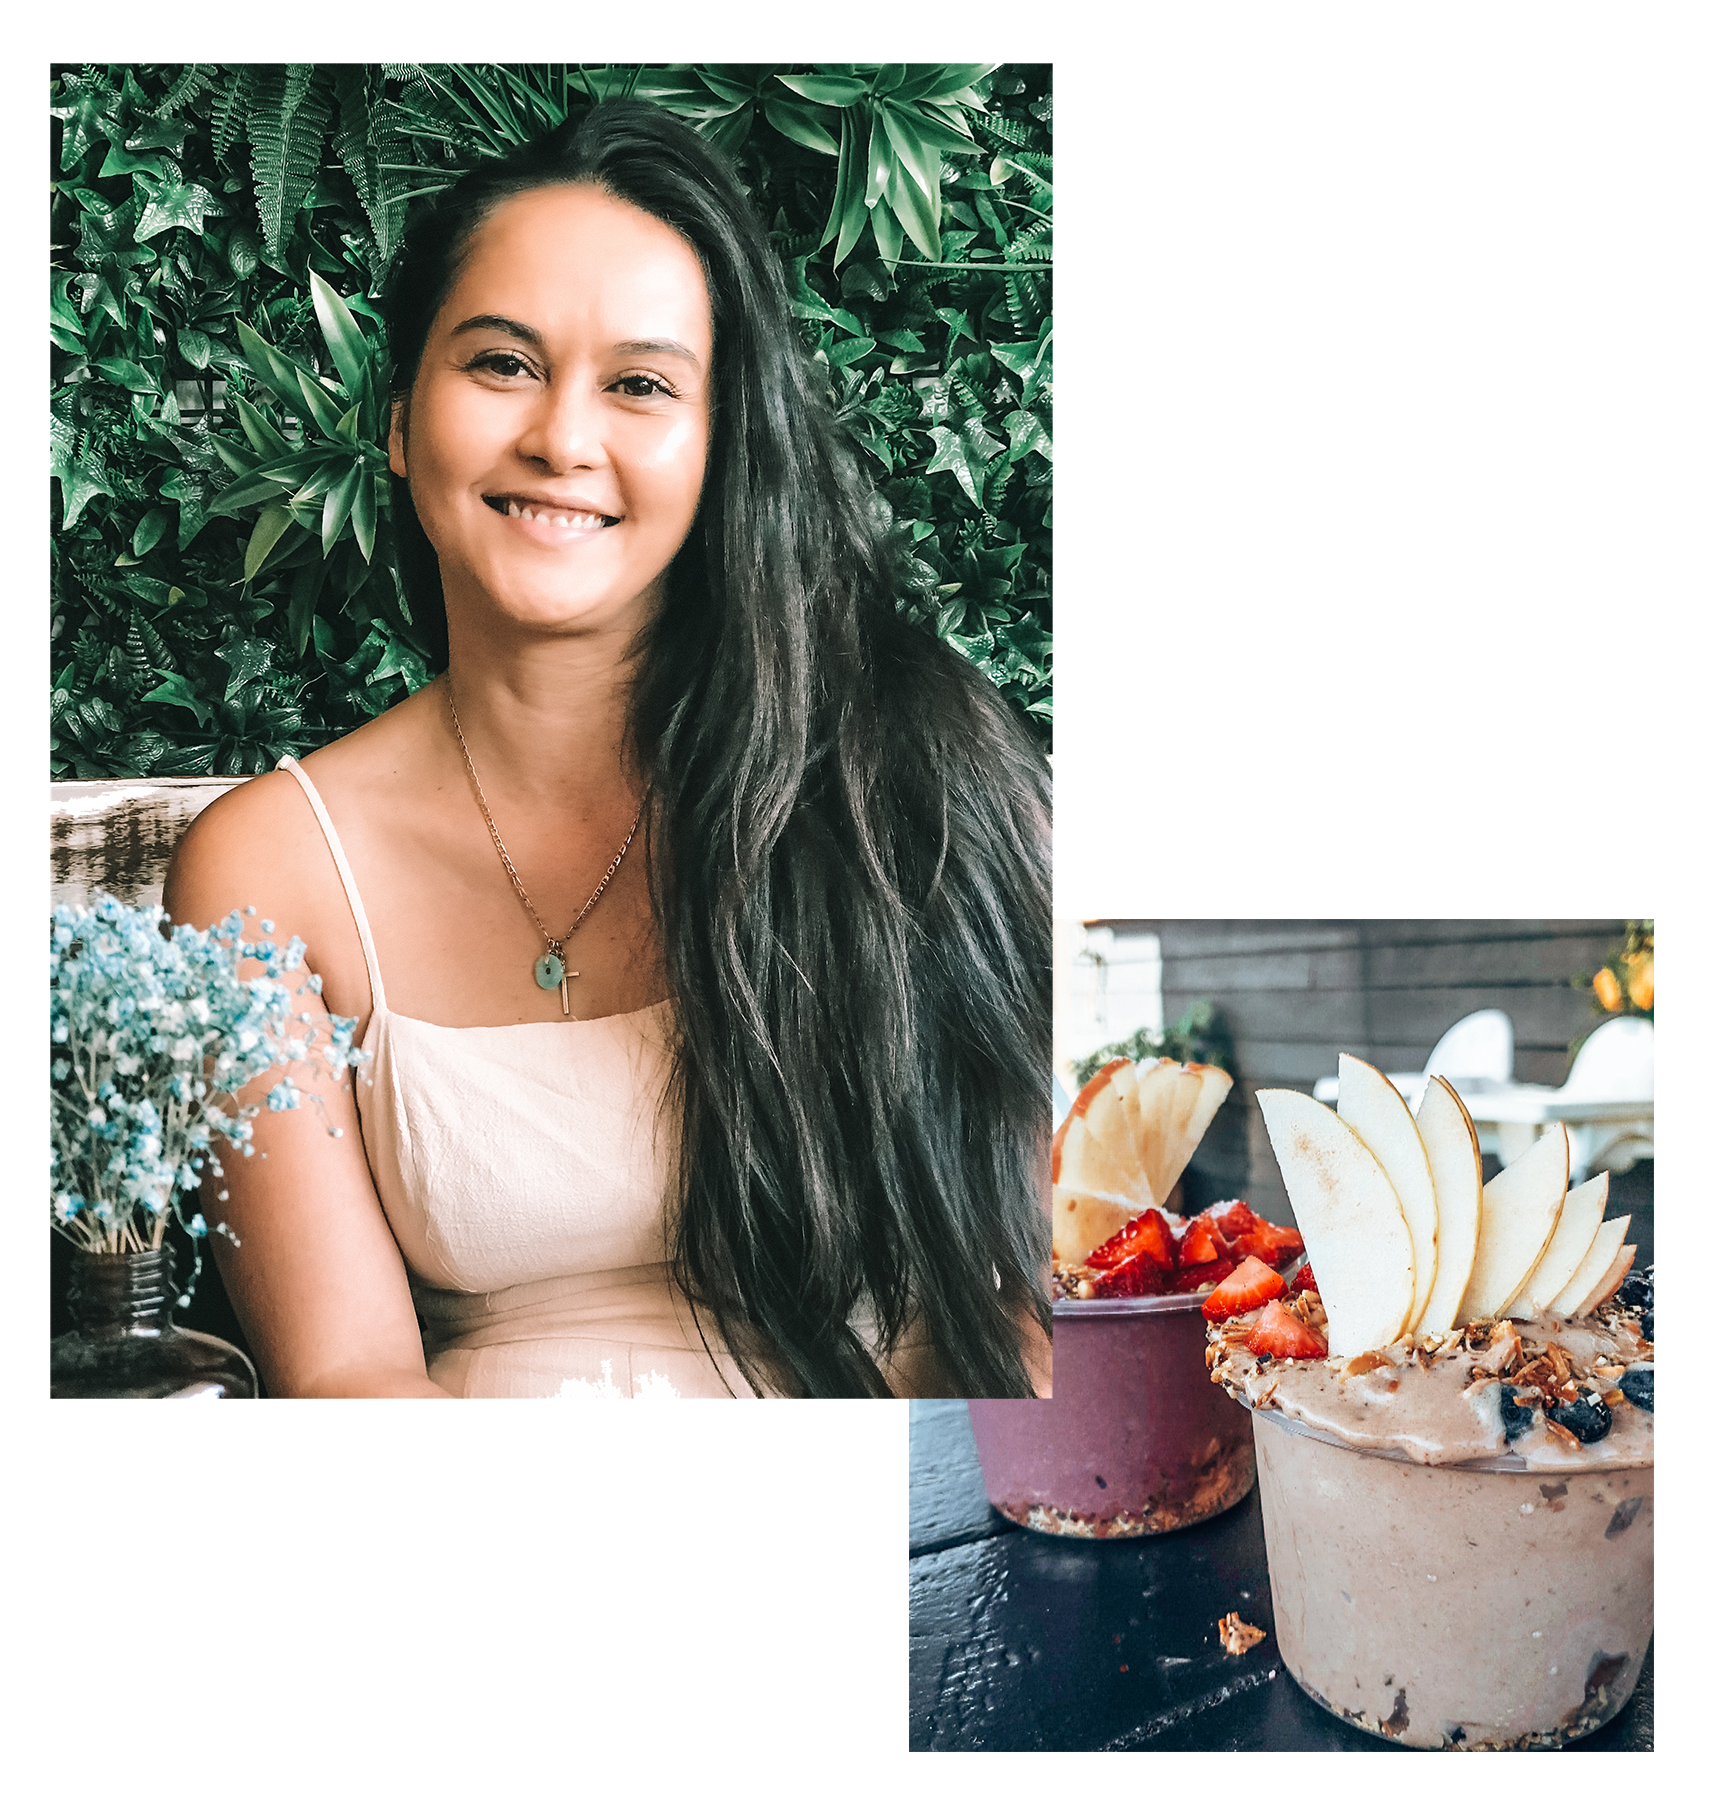 I'm obsessed with overflowing acai bowls, sunny beach walks, my local Thai restaurant, and skin health. -